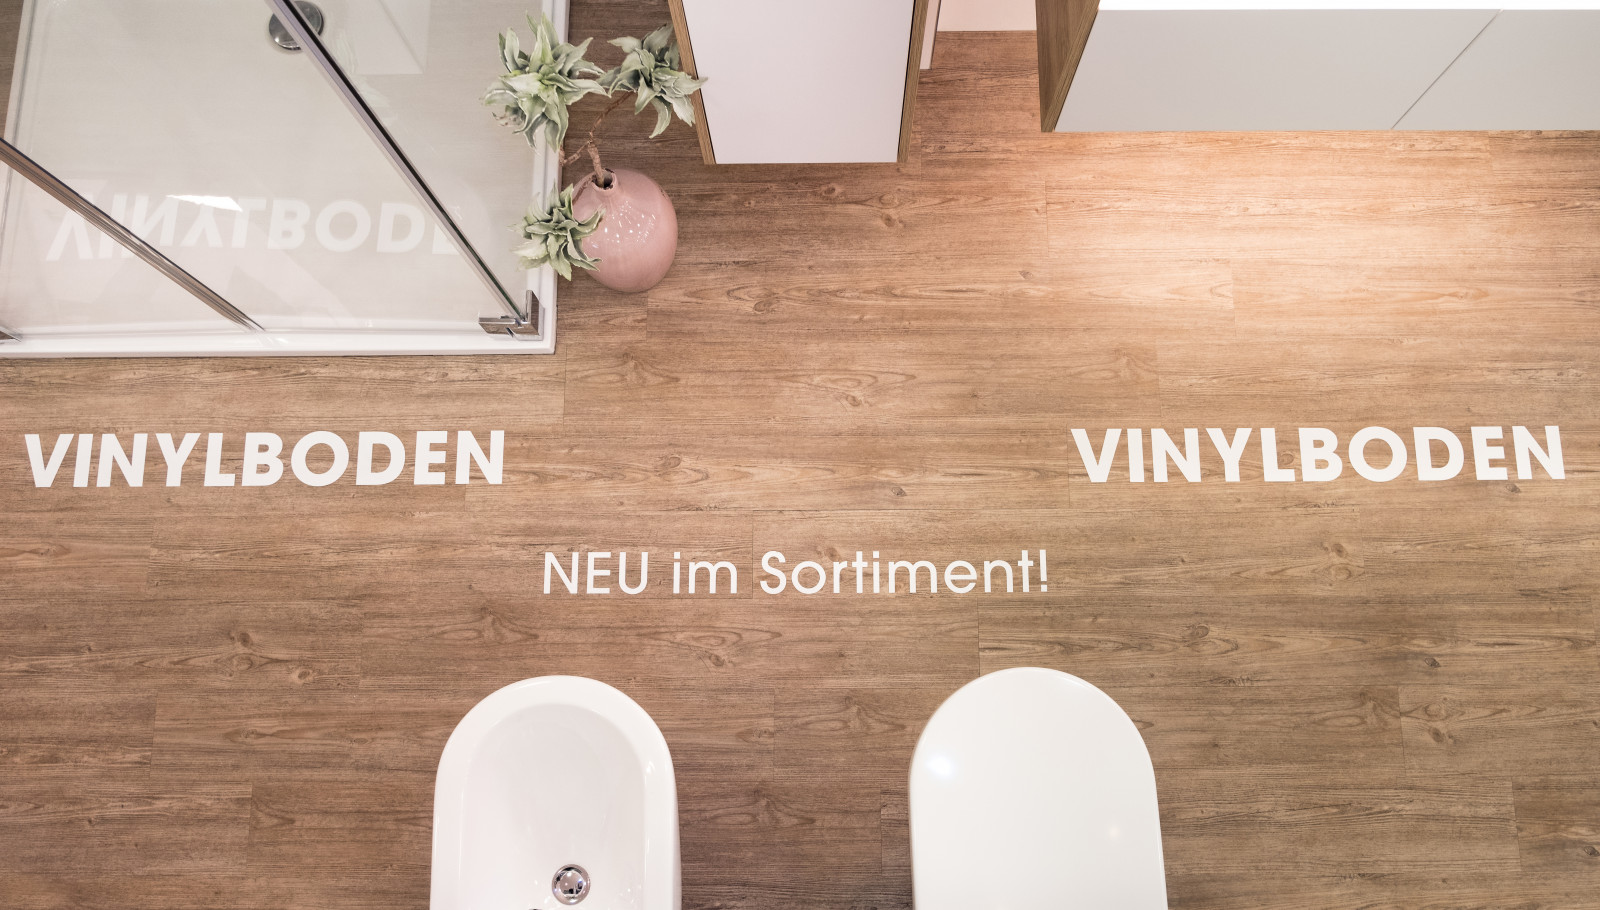 Vinylboden links